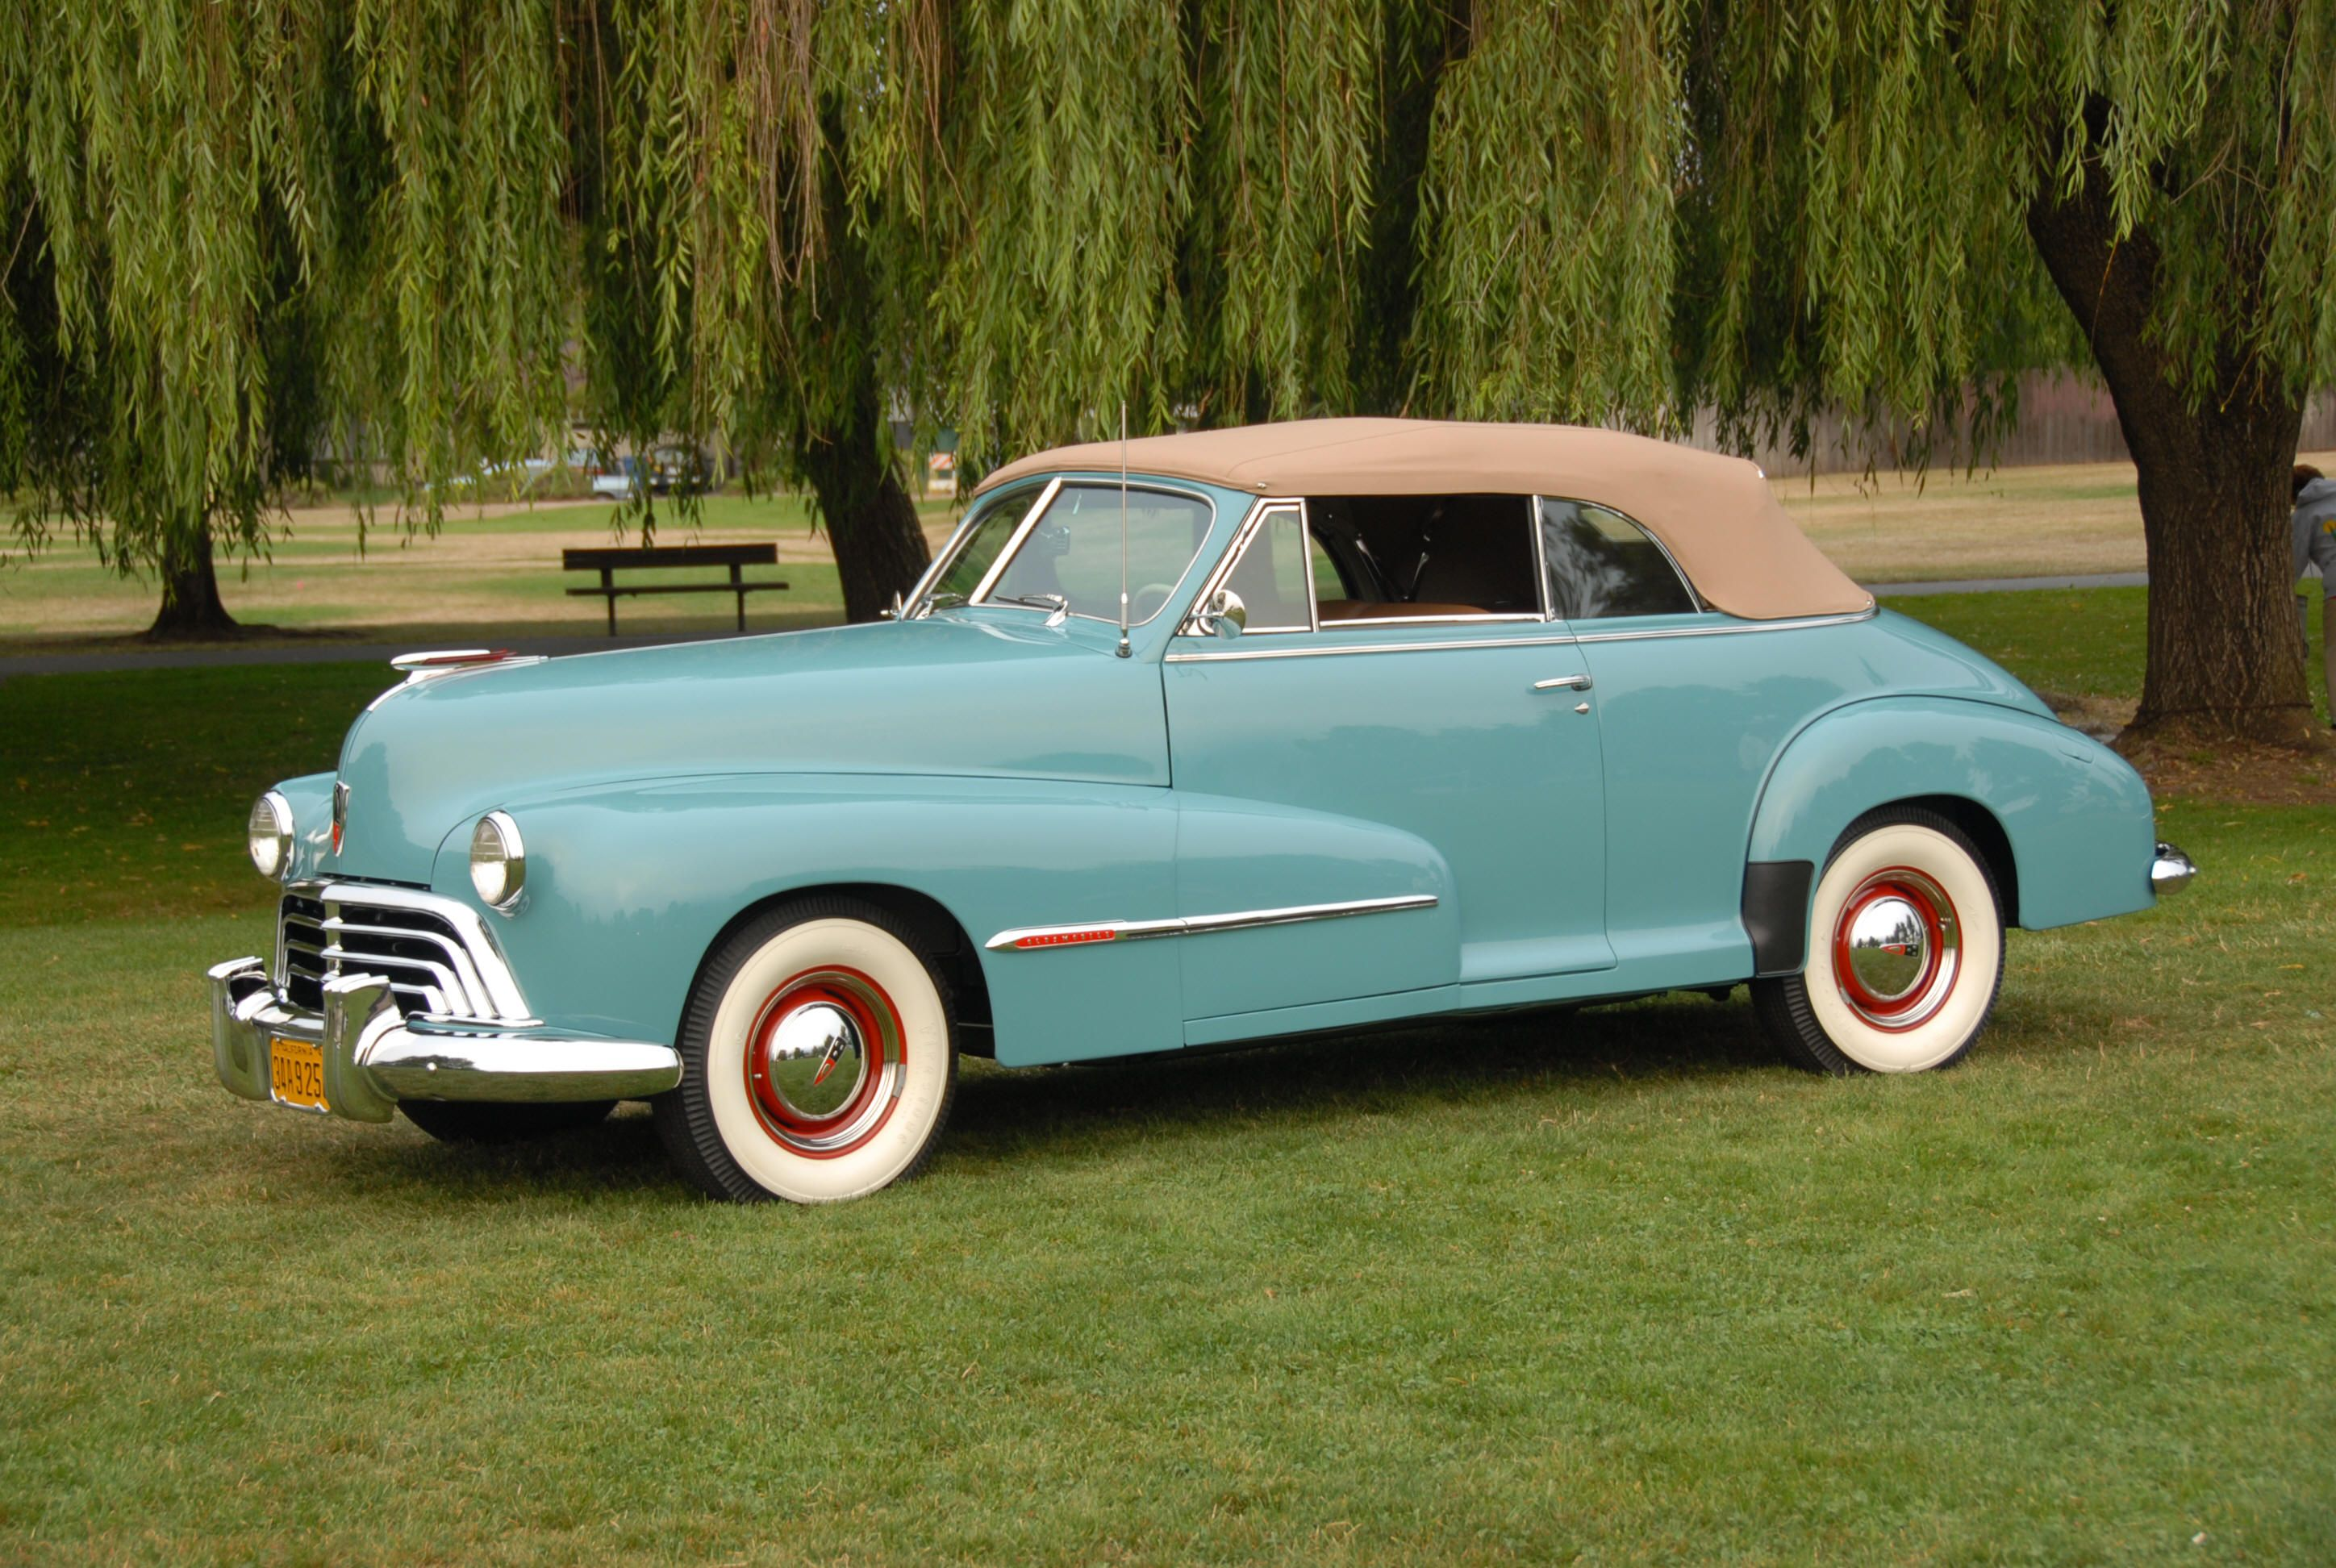 1947 Oldsmobile Series 68 Classic Cars Best American Cars